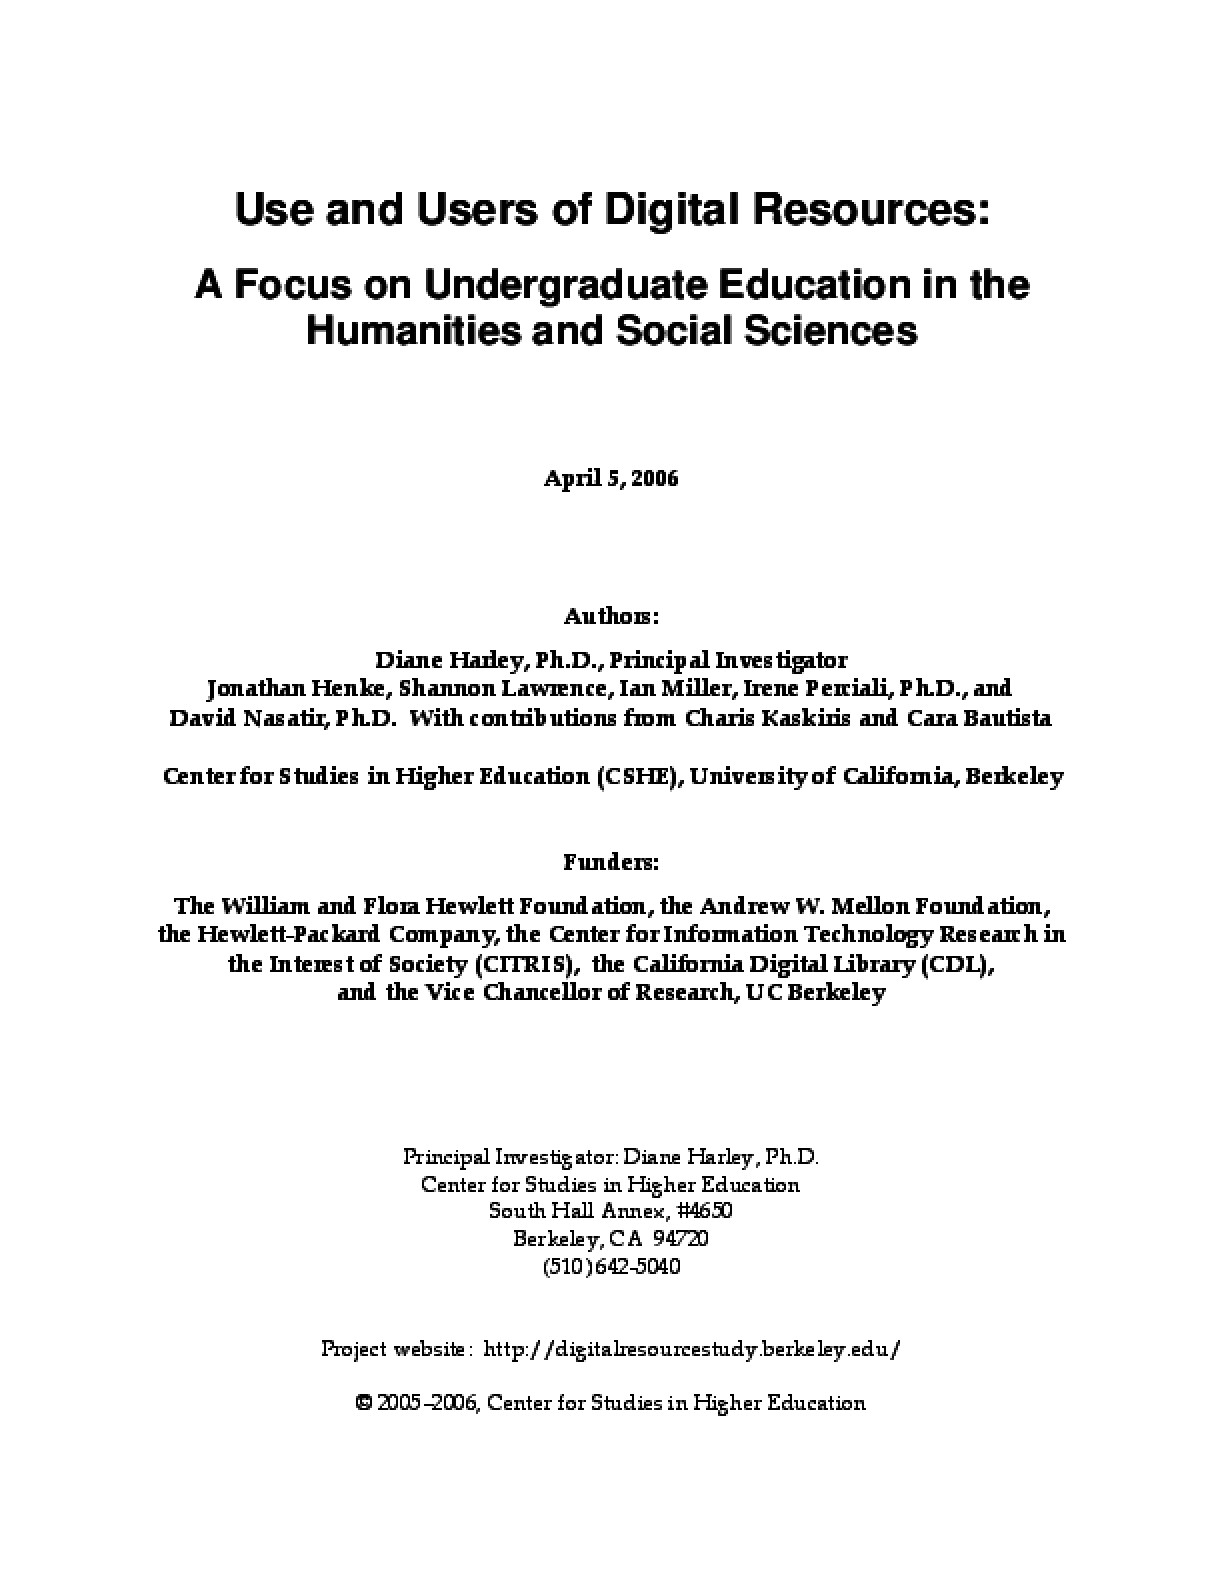 Full Report: Use and Users of Digital Resources: A Focus on Undergraduate Education in the Humanities and Social Sciences